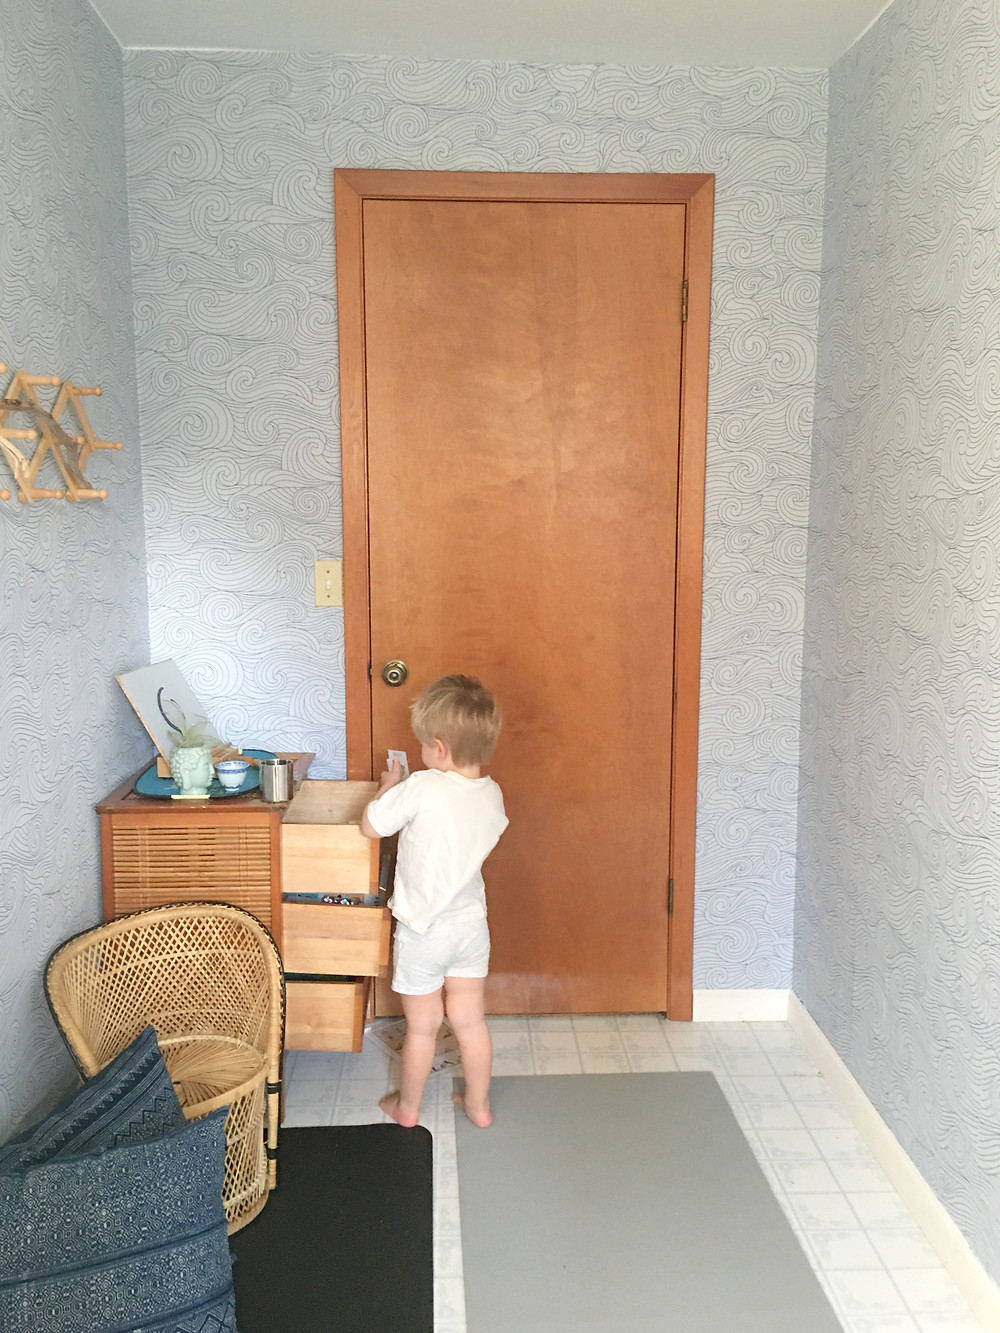 little boy next to open drawers standing in front of a closed door in meditation room